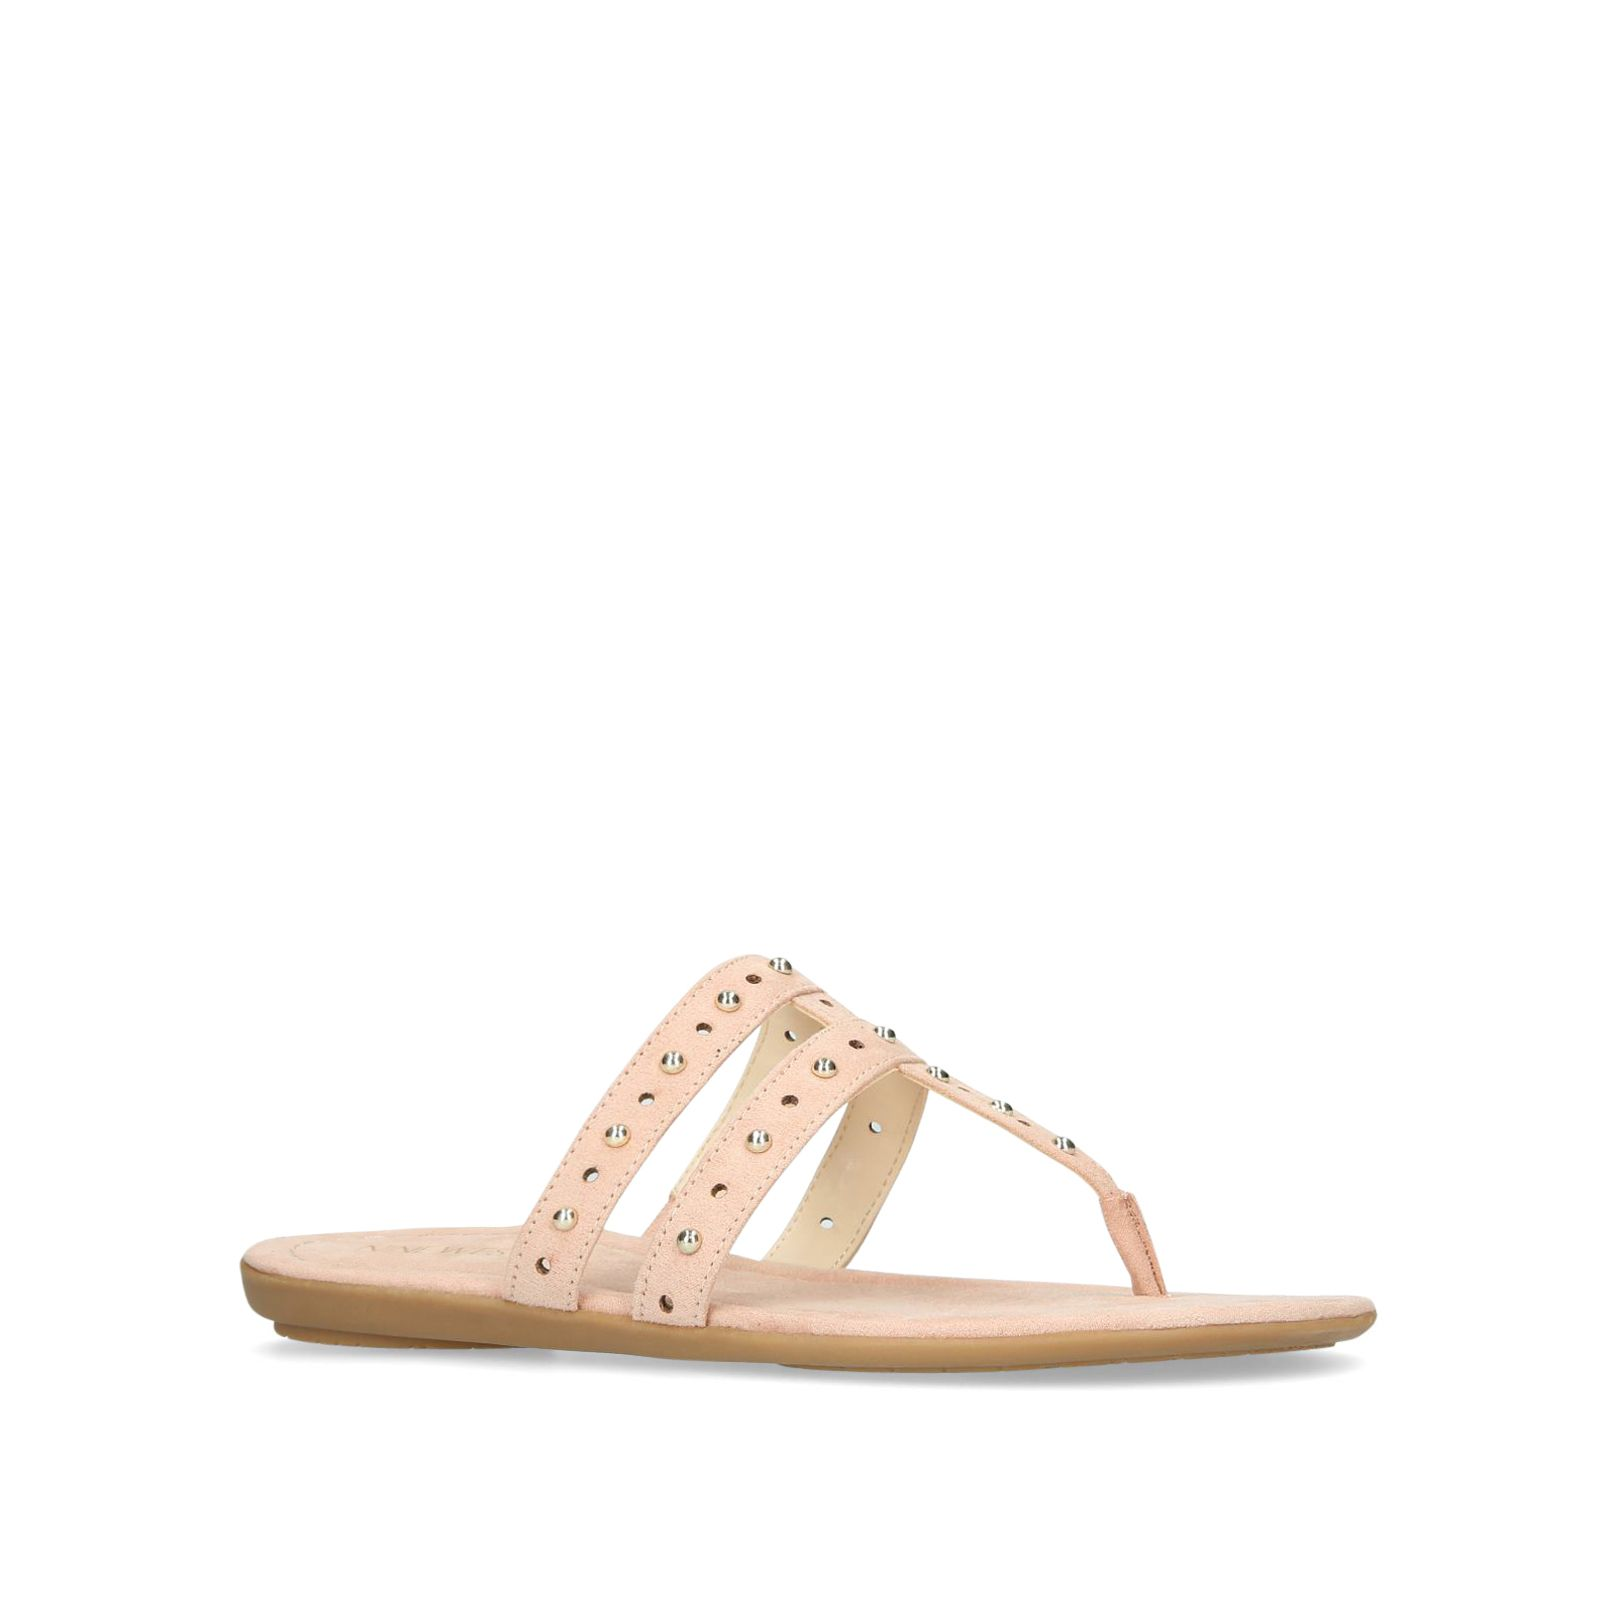 Nine West Keelova Sandals, Pink